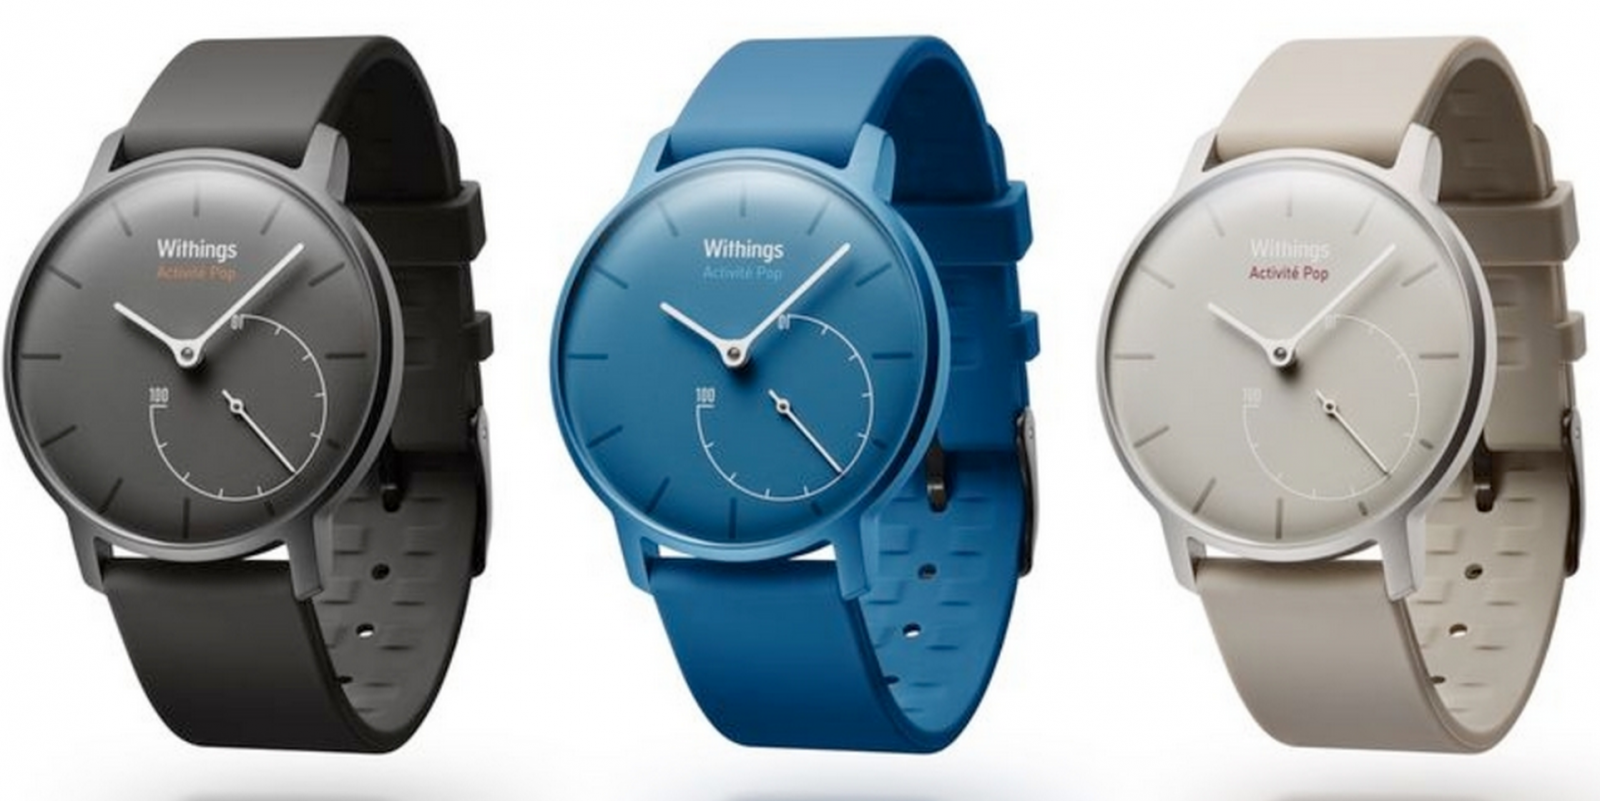 Withings Activité Pop launched at CES 2015